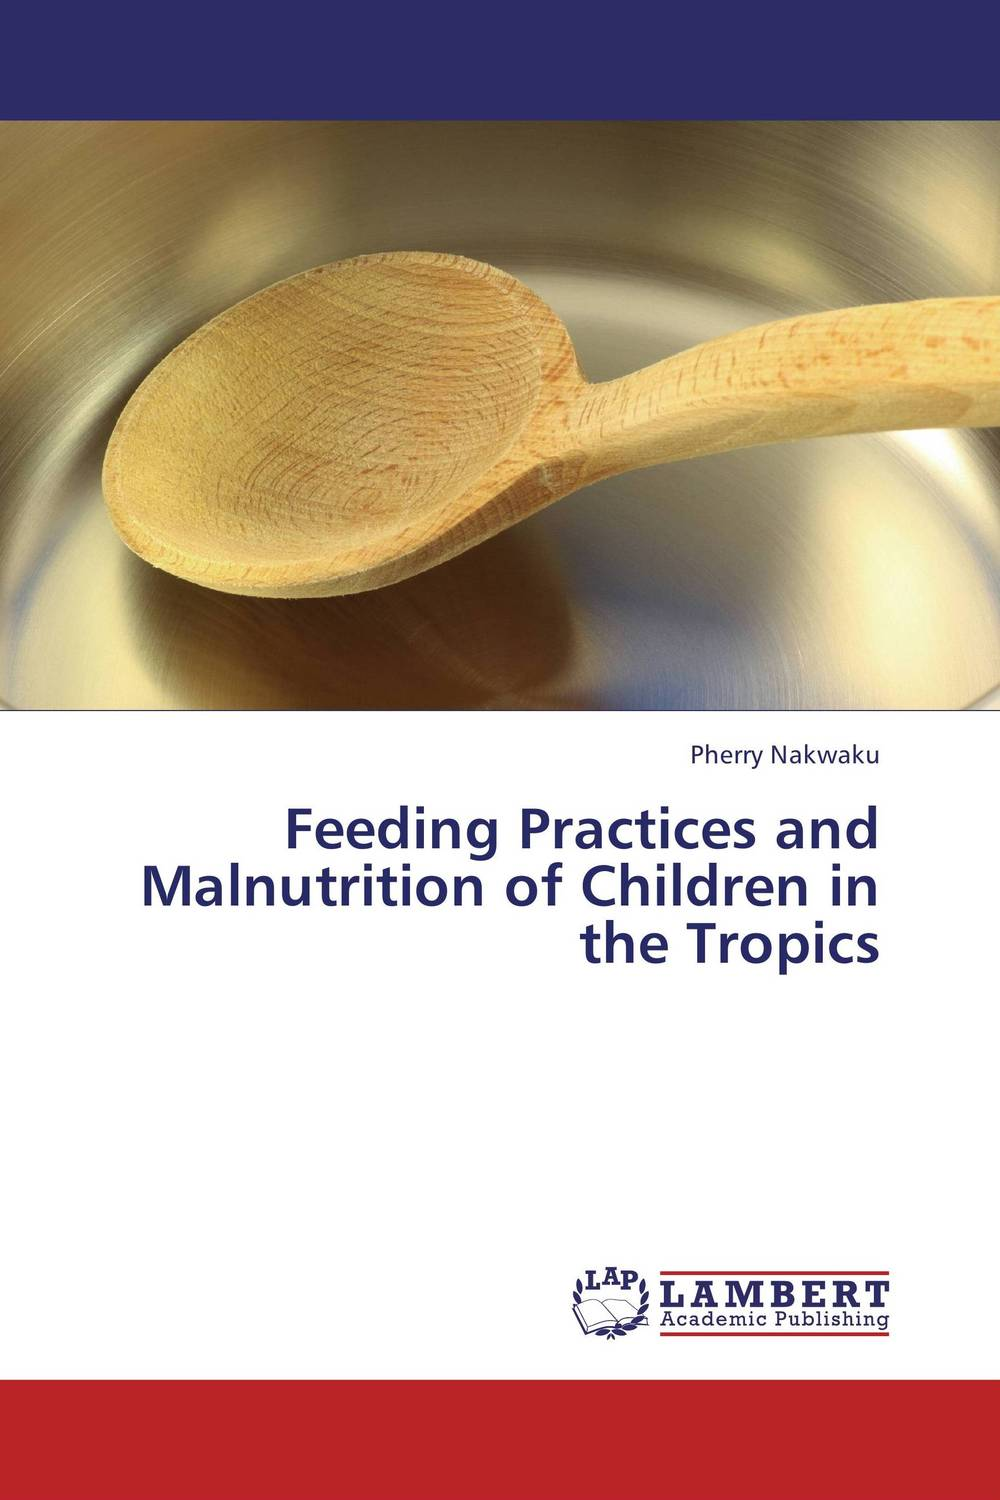 Feeding Practices and Malnutrition of Children in the Tropics maternal perception and feeding practices effect on preschooler s weight